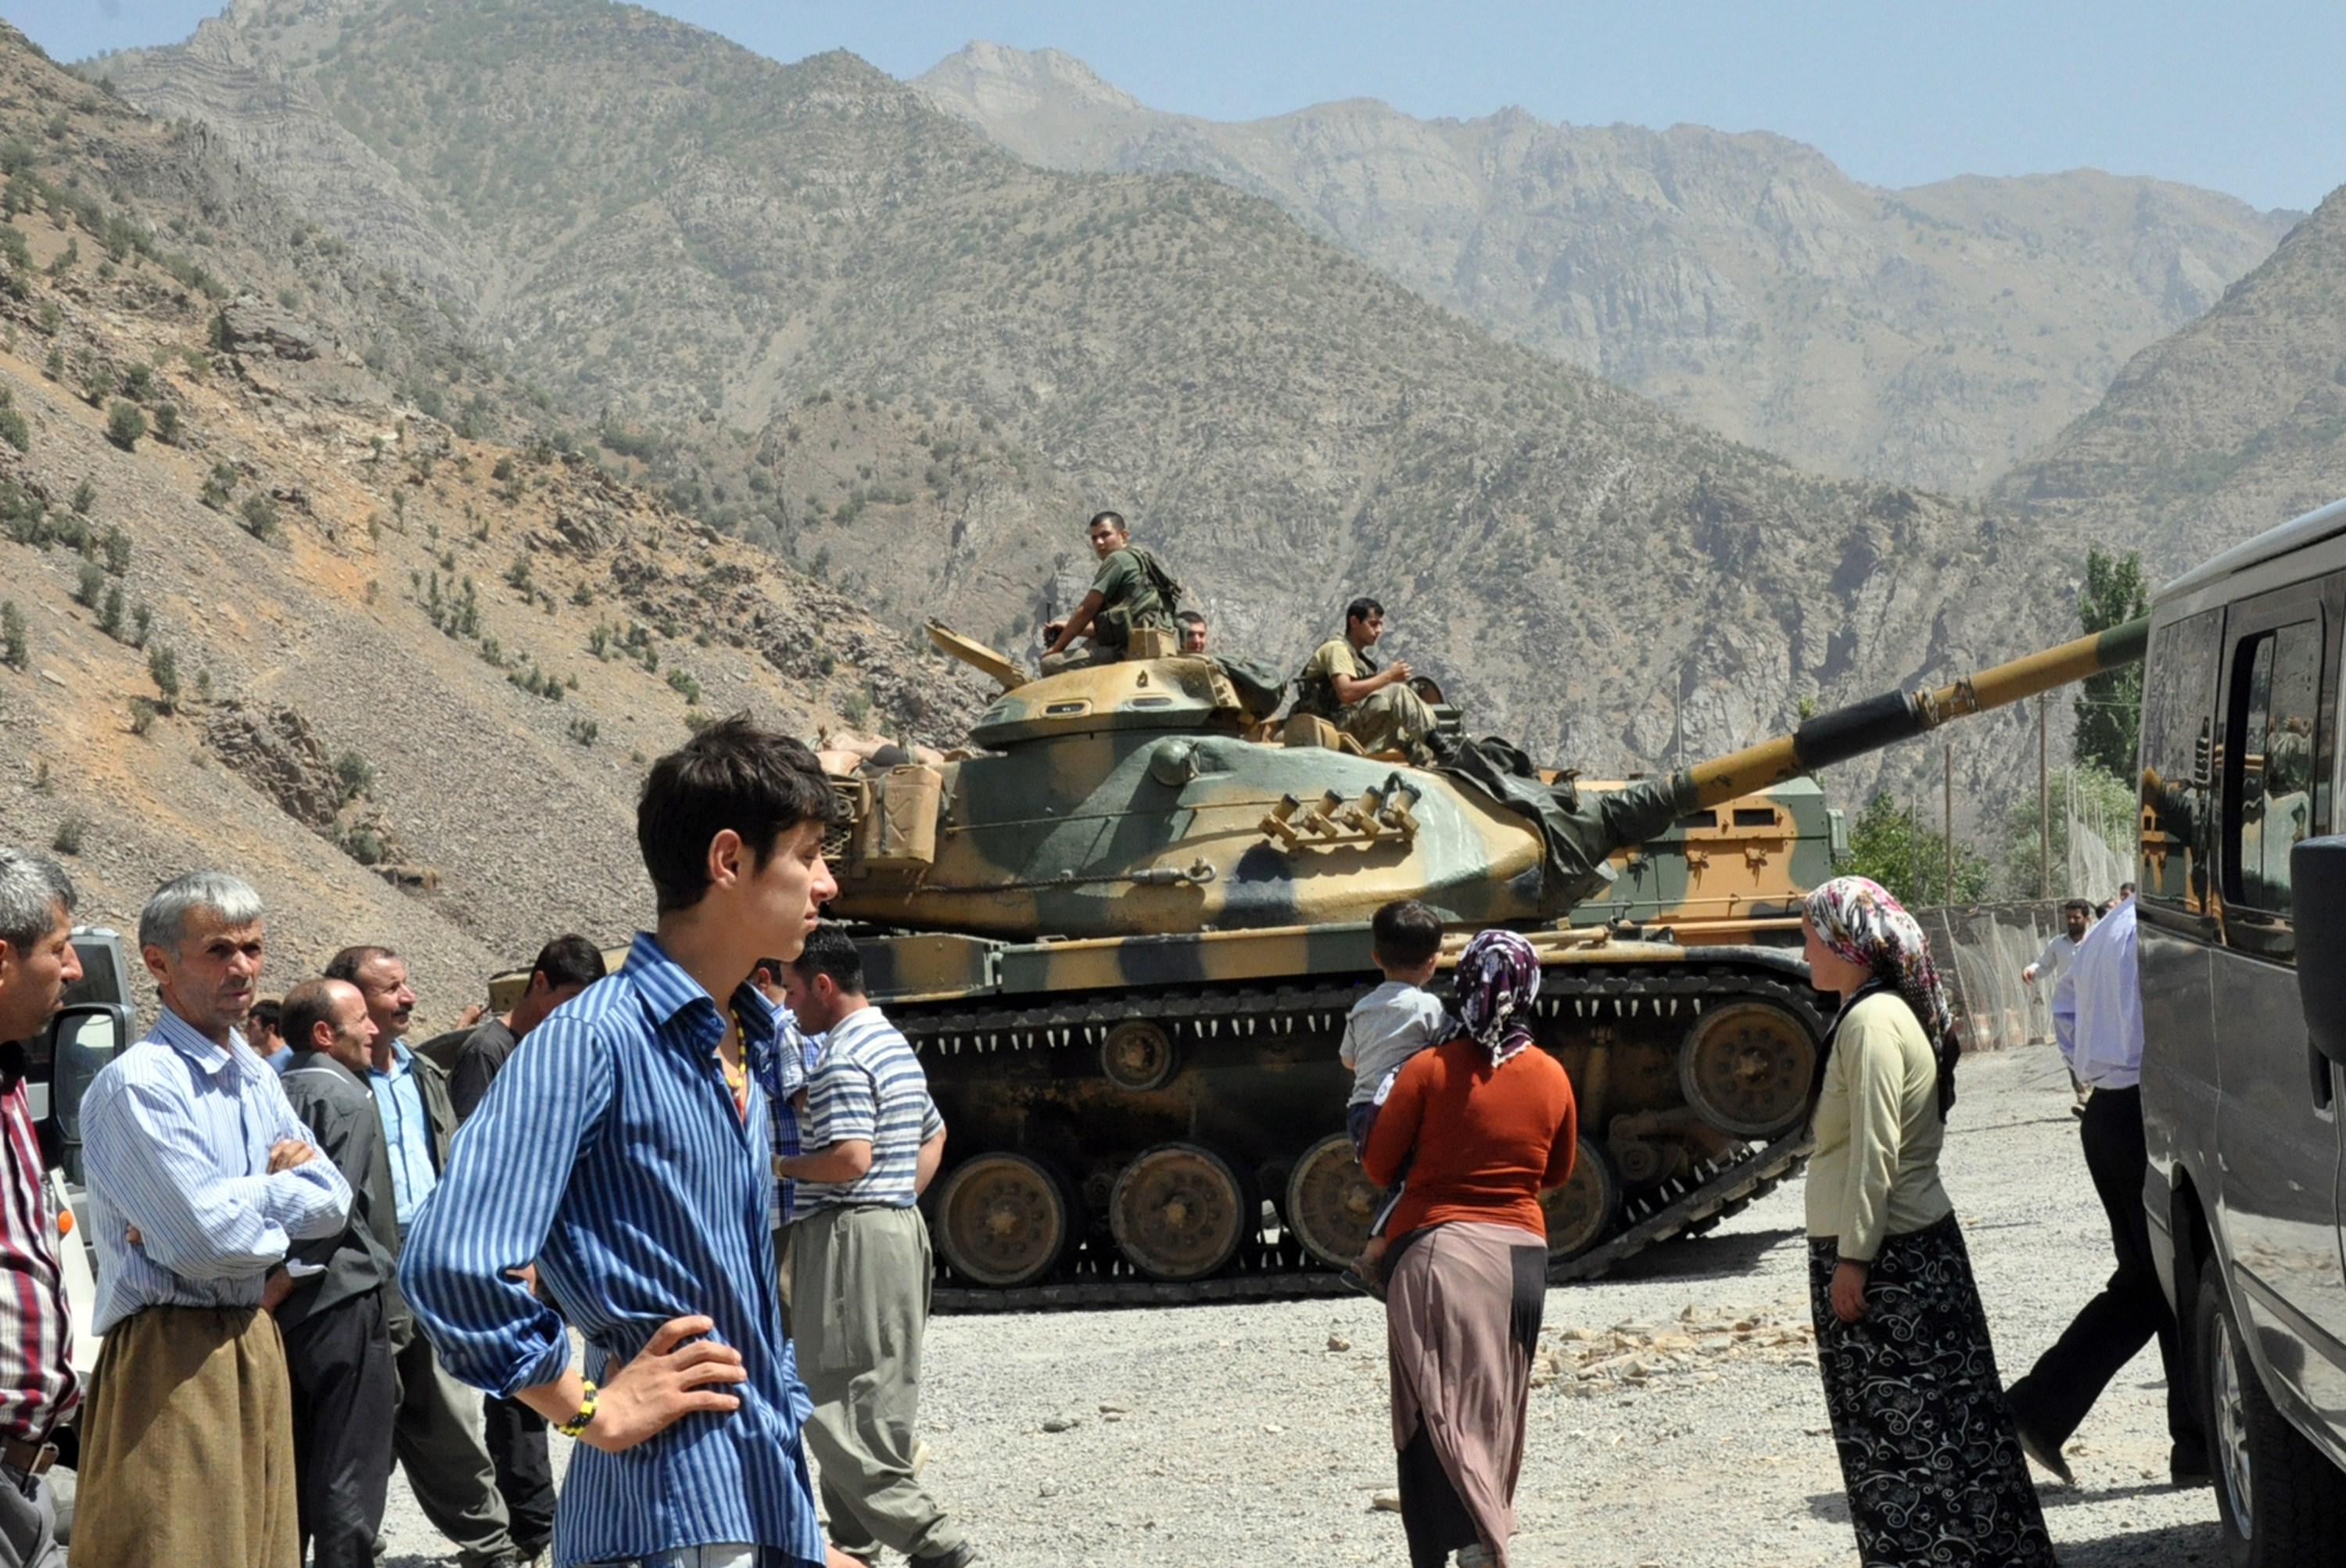 People stand near armoured vehicles of Turkish military stationed in front of Gecimli military outpost where Kurdish rebels attacked and killed 6 soldiers and 2 village guard on 5 August at Cukurca in Hakkari AFP PHOTO / STR